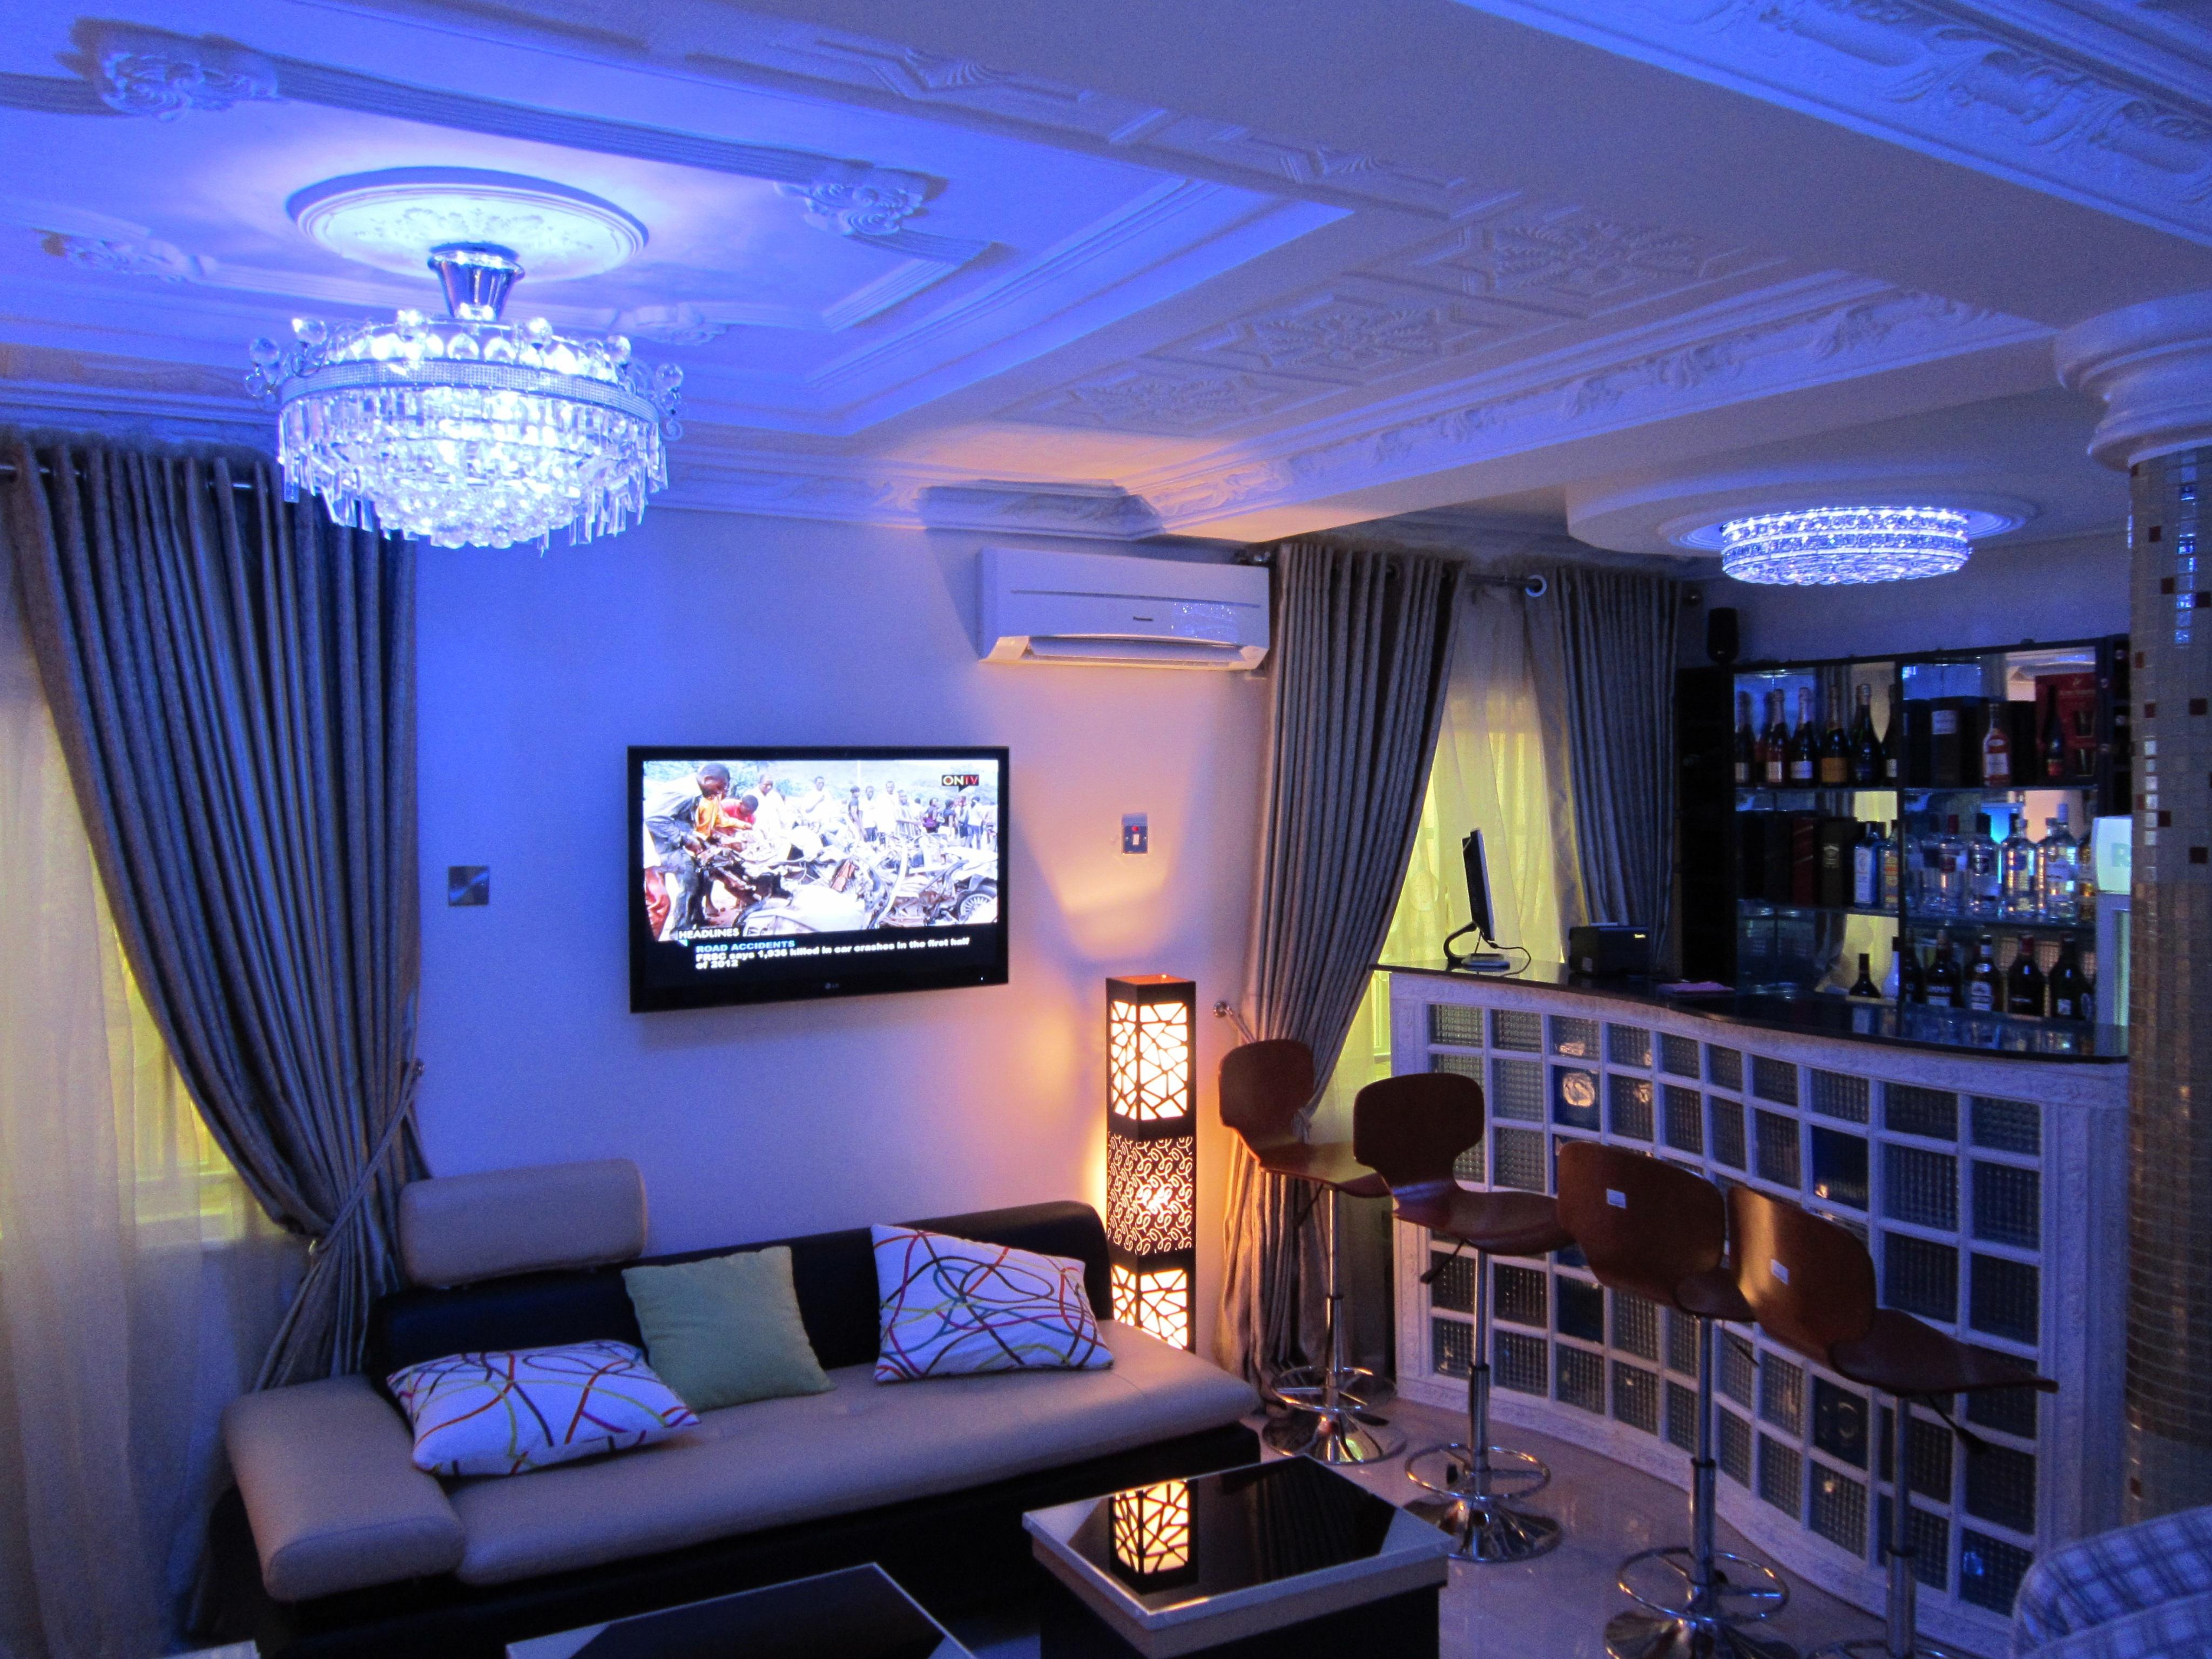 Bar in a living room p o p work ceilling on ceiling for P o p ceiling living room